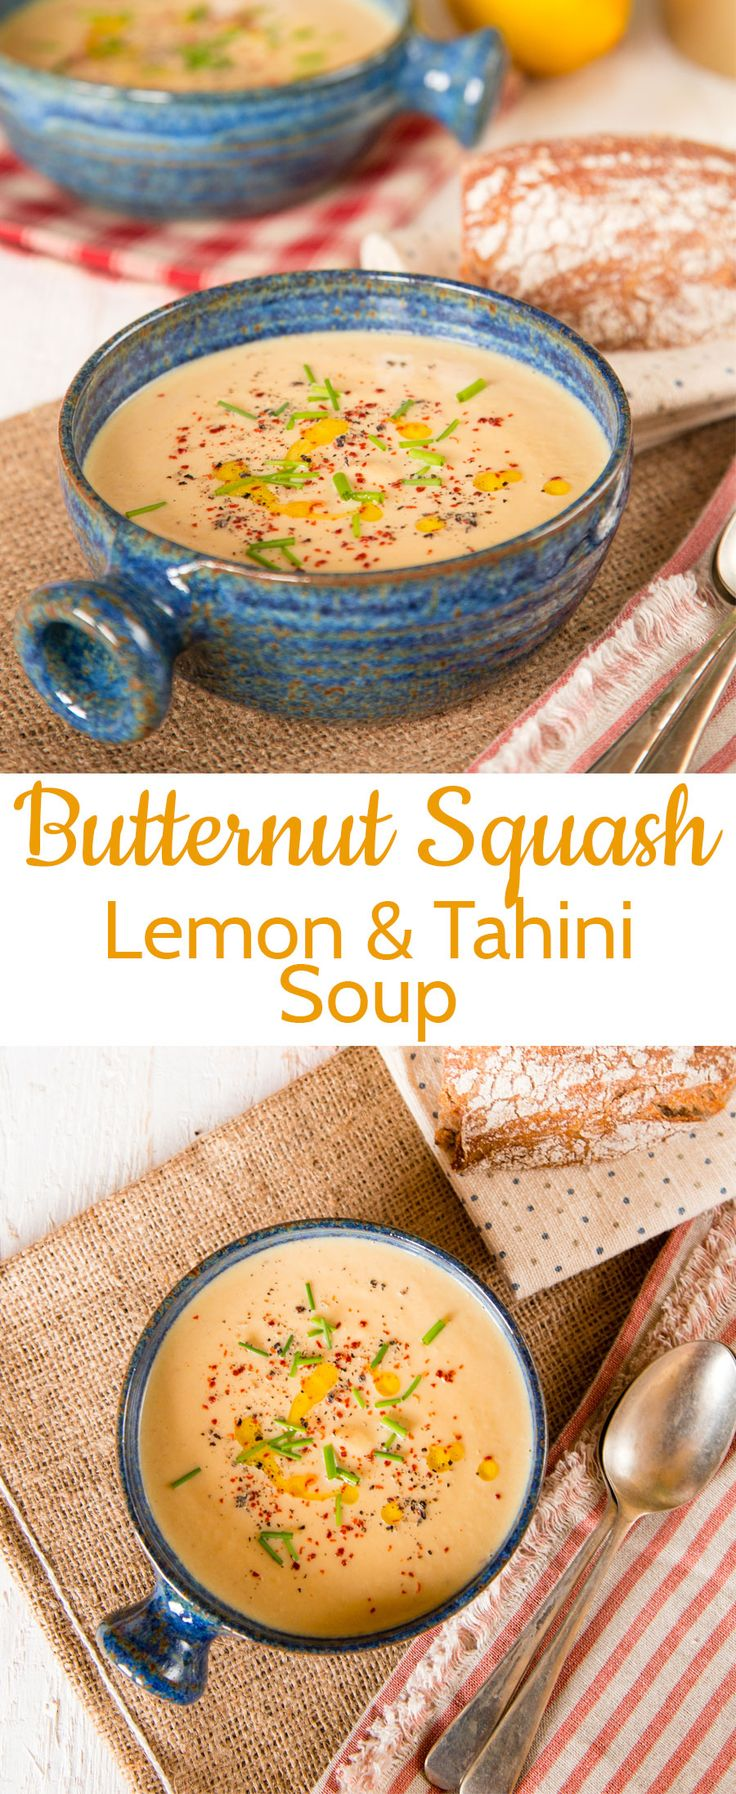 This fragrant golden soup is a perfect recipe for spring; butternut squash soup with lemon and tahini. Light and delicious.